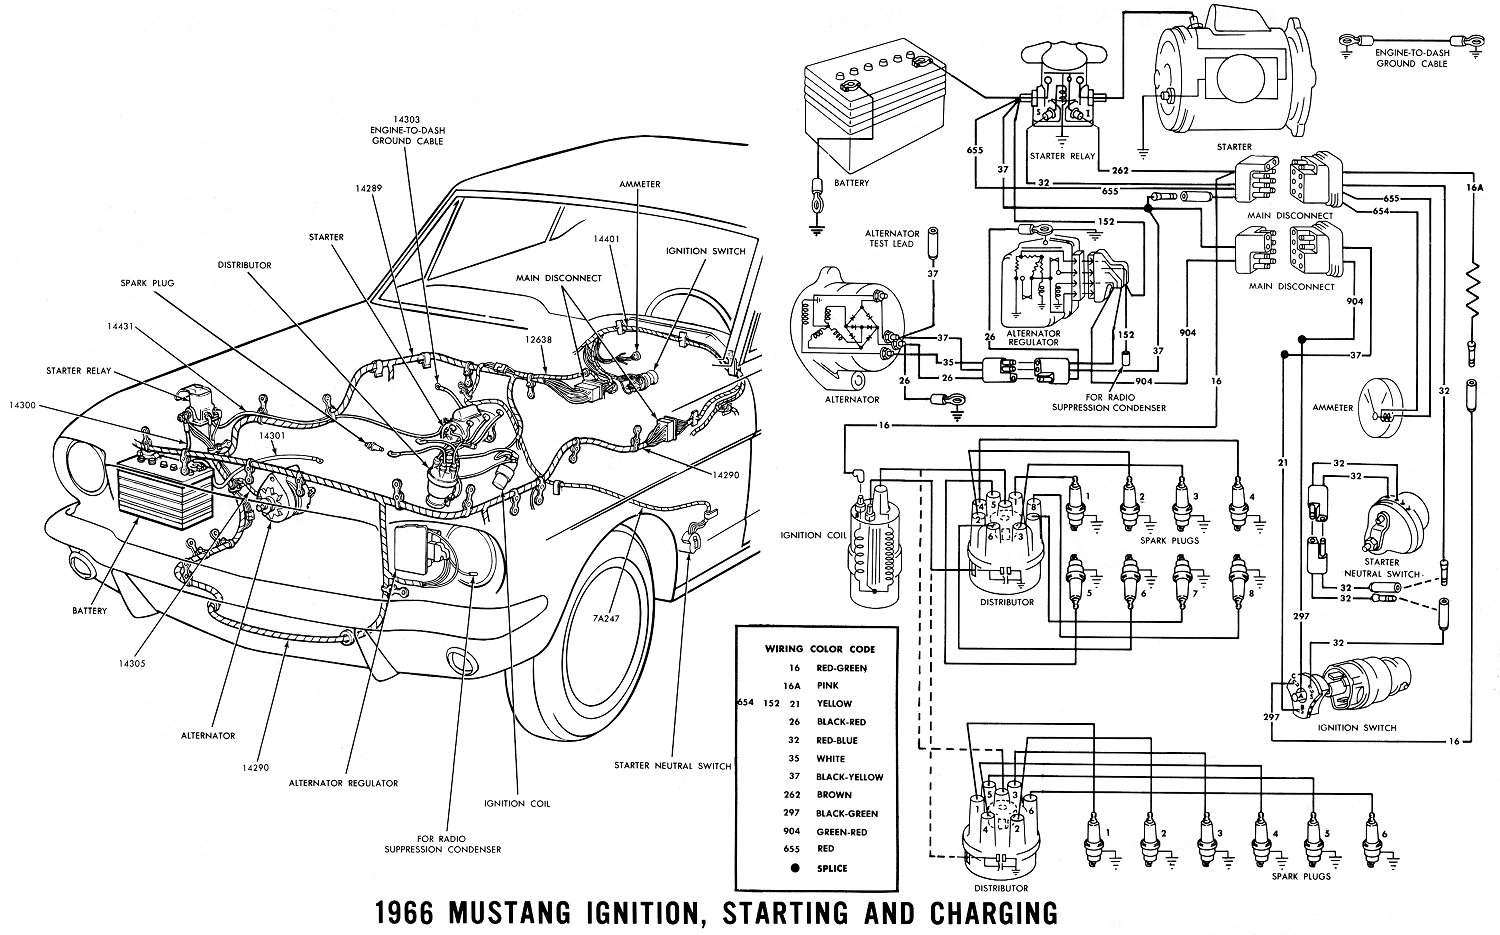 66ignit 1966 mustang wiring diagrams average joe restoration 1965 ford mustang wiring diagrams at sewacar.co